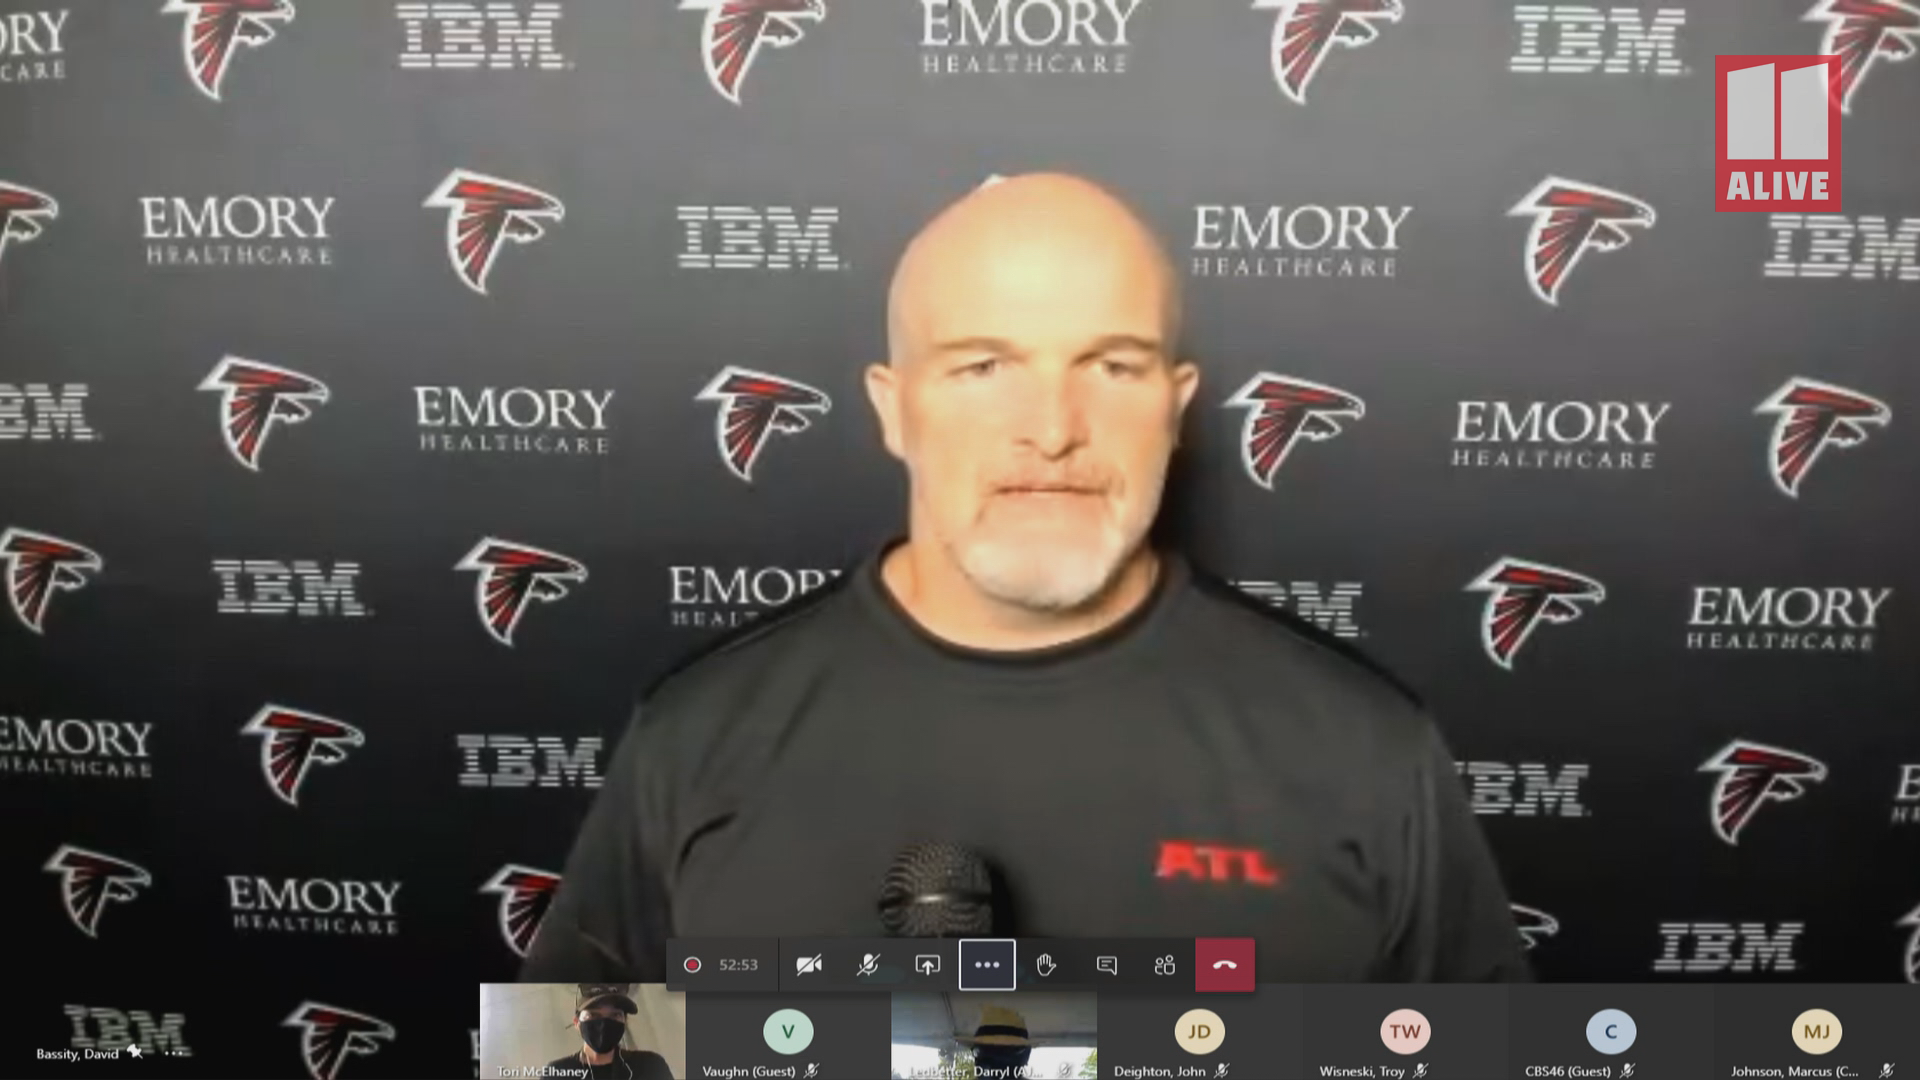 Atlanta Falcons Head Coach Dan Quinn On The Larger Picture Of Social Justice 11alive Com